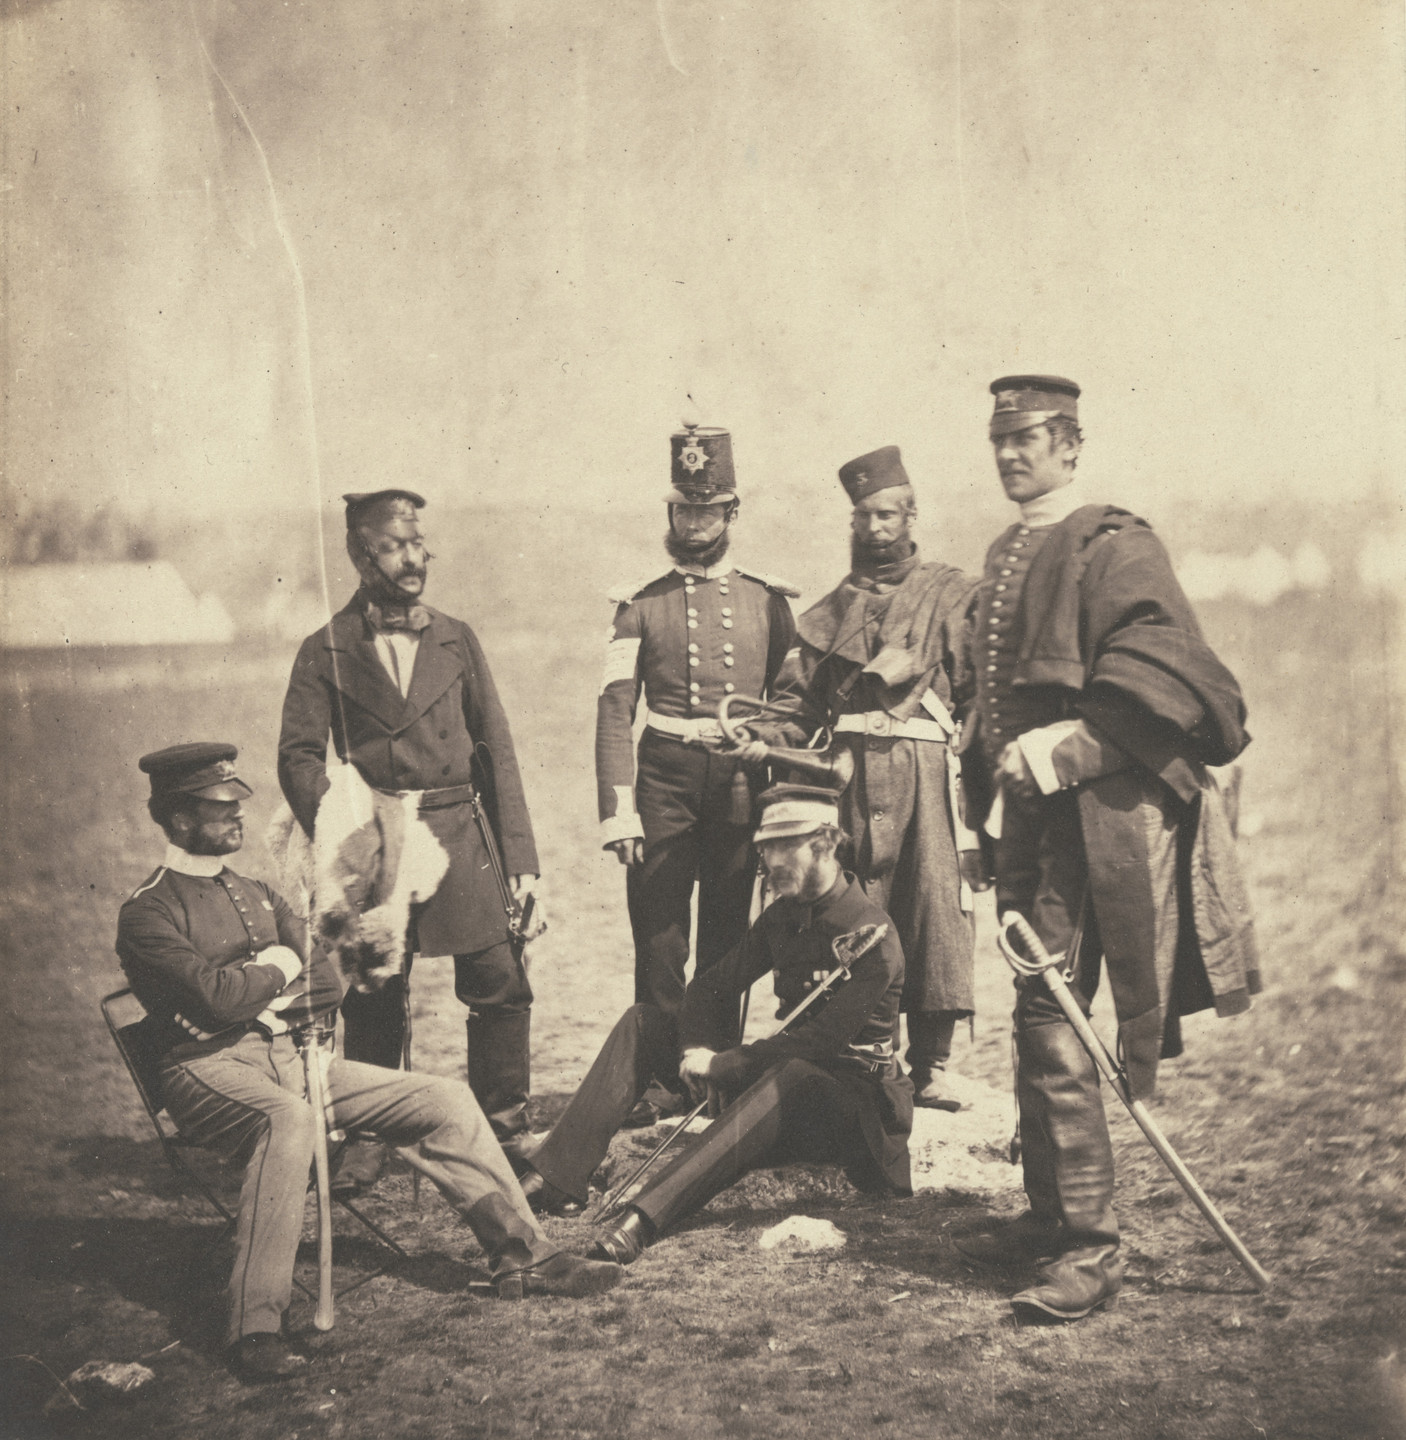 Roger Fenton. Brigadier General Van Straubenzee and Officers of the Buffs. 1855